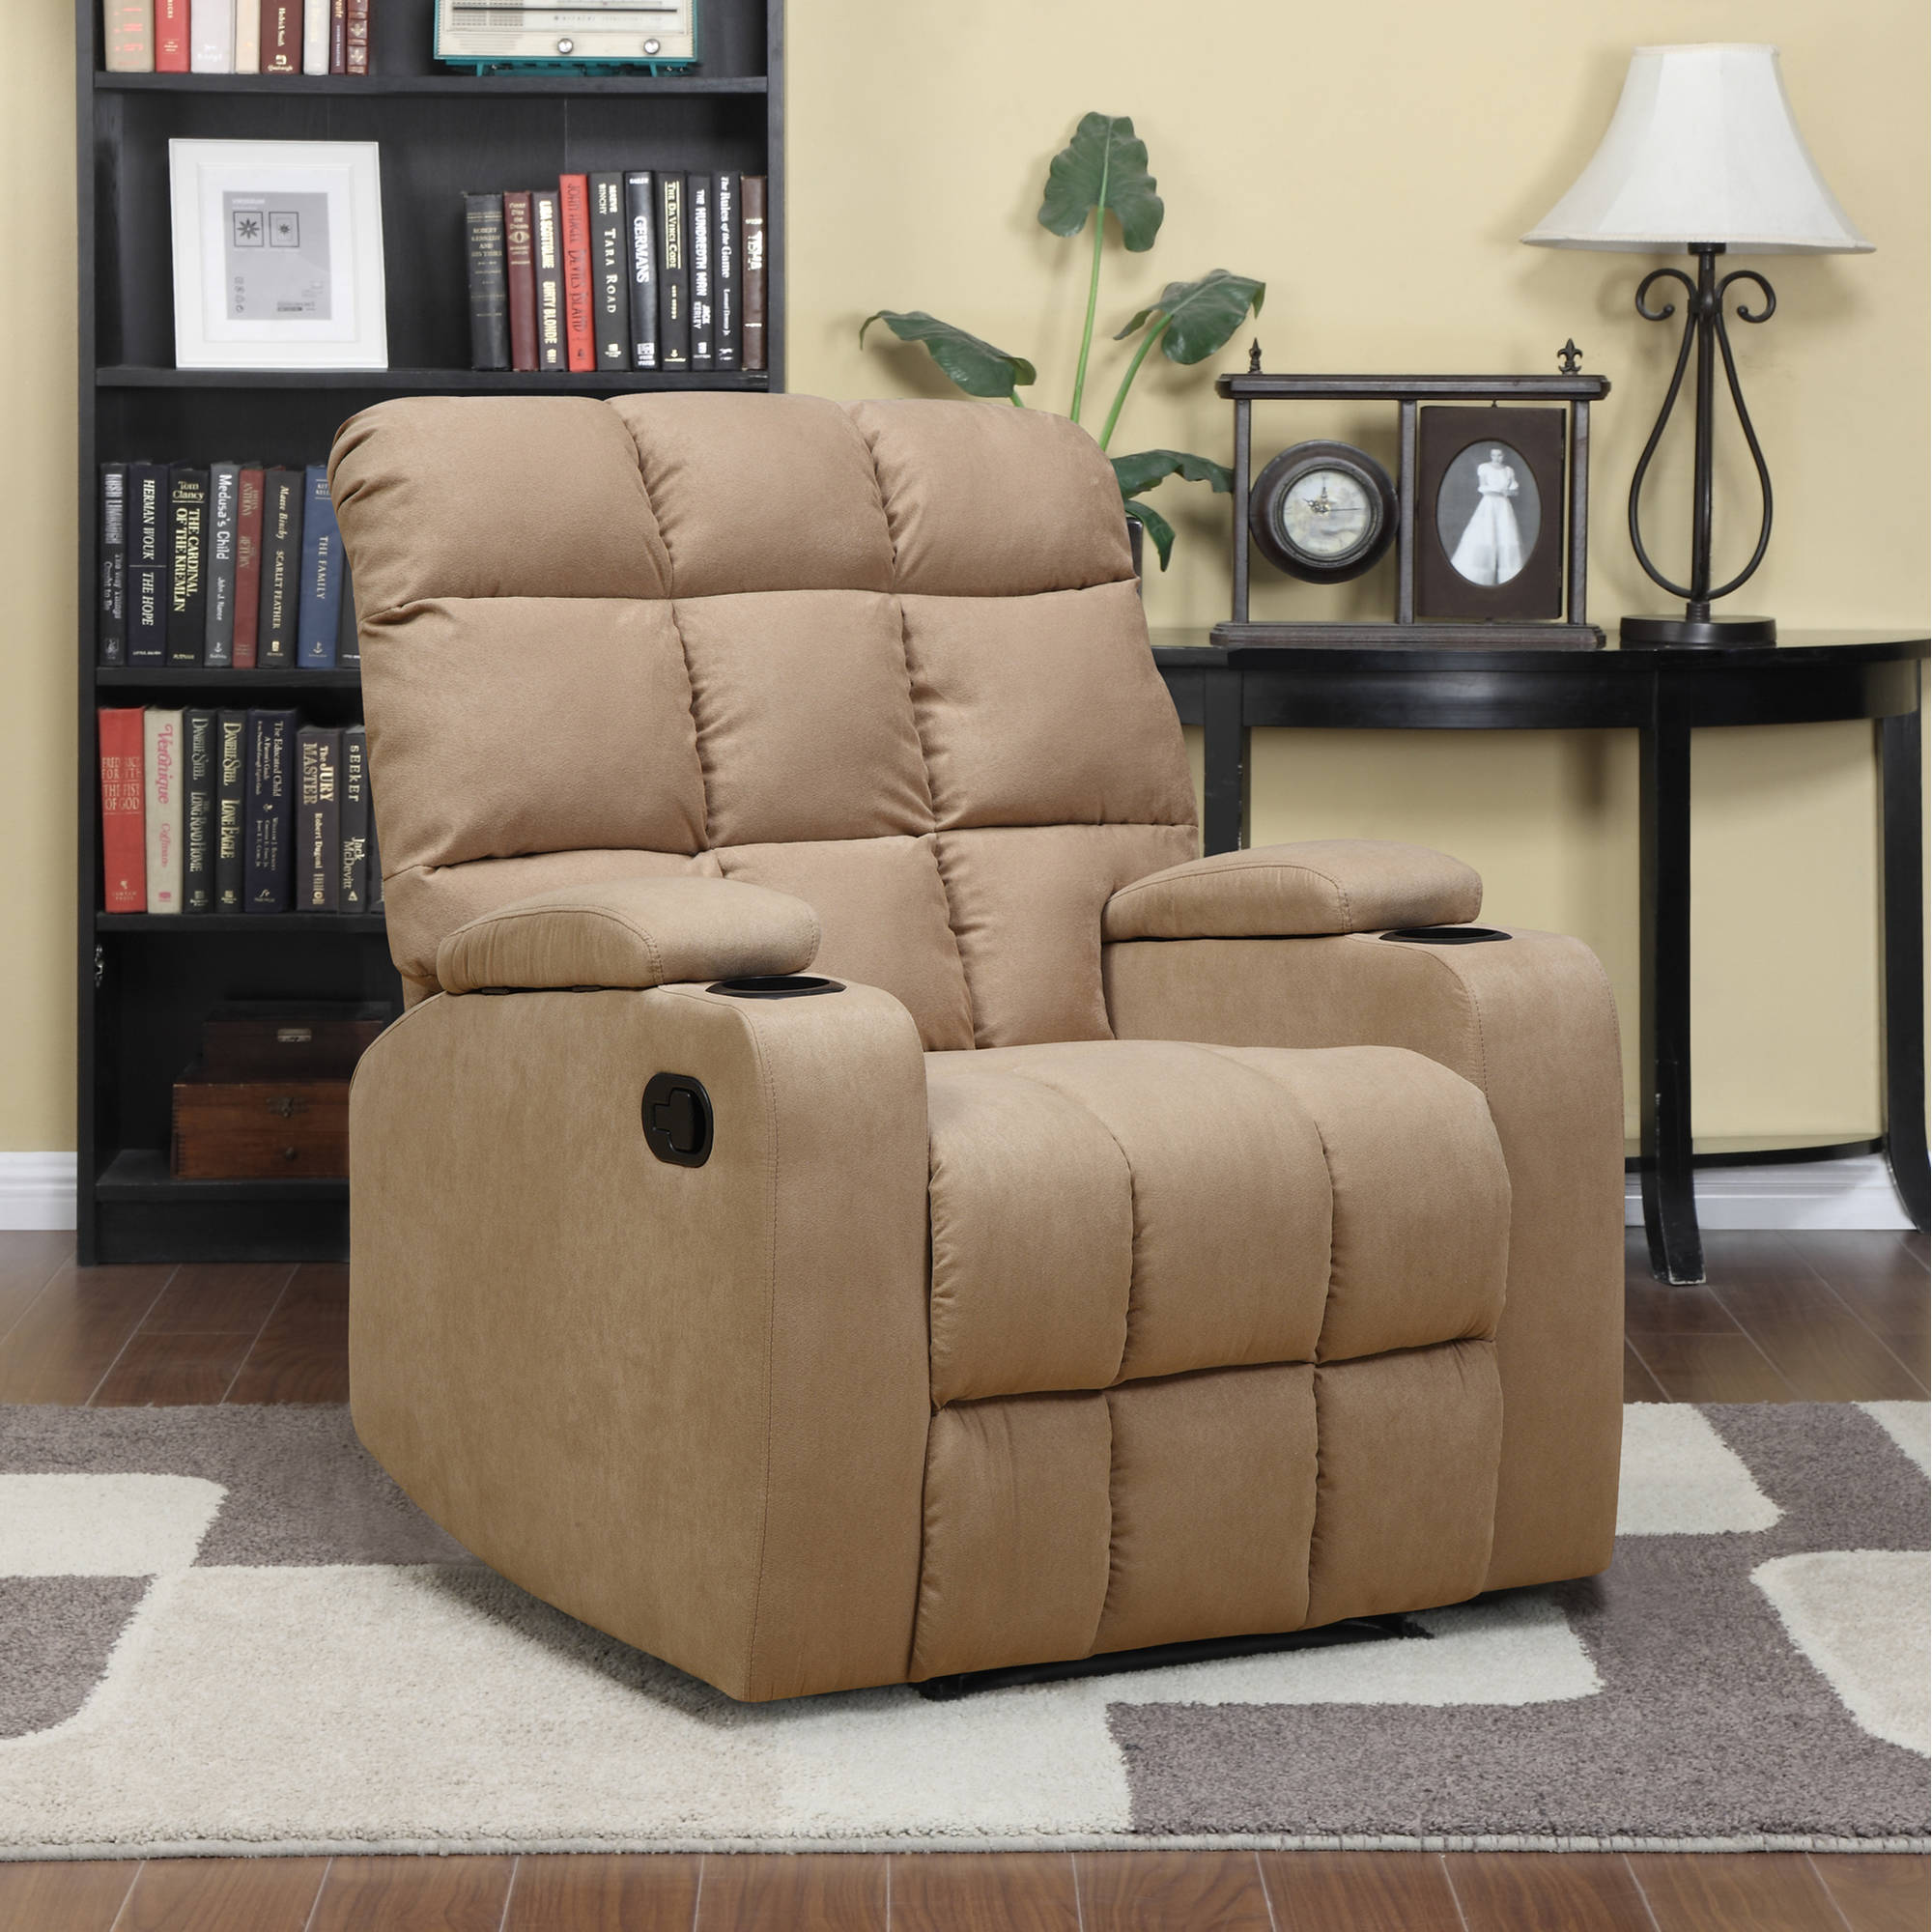 mainstays tyler wall hugger storage arm recliner chair multiple colors